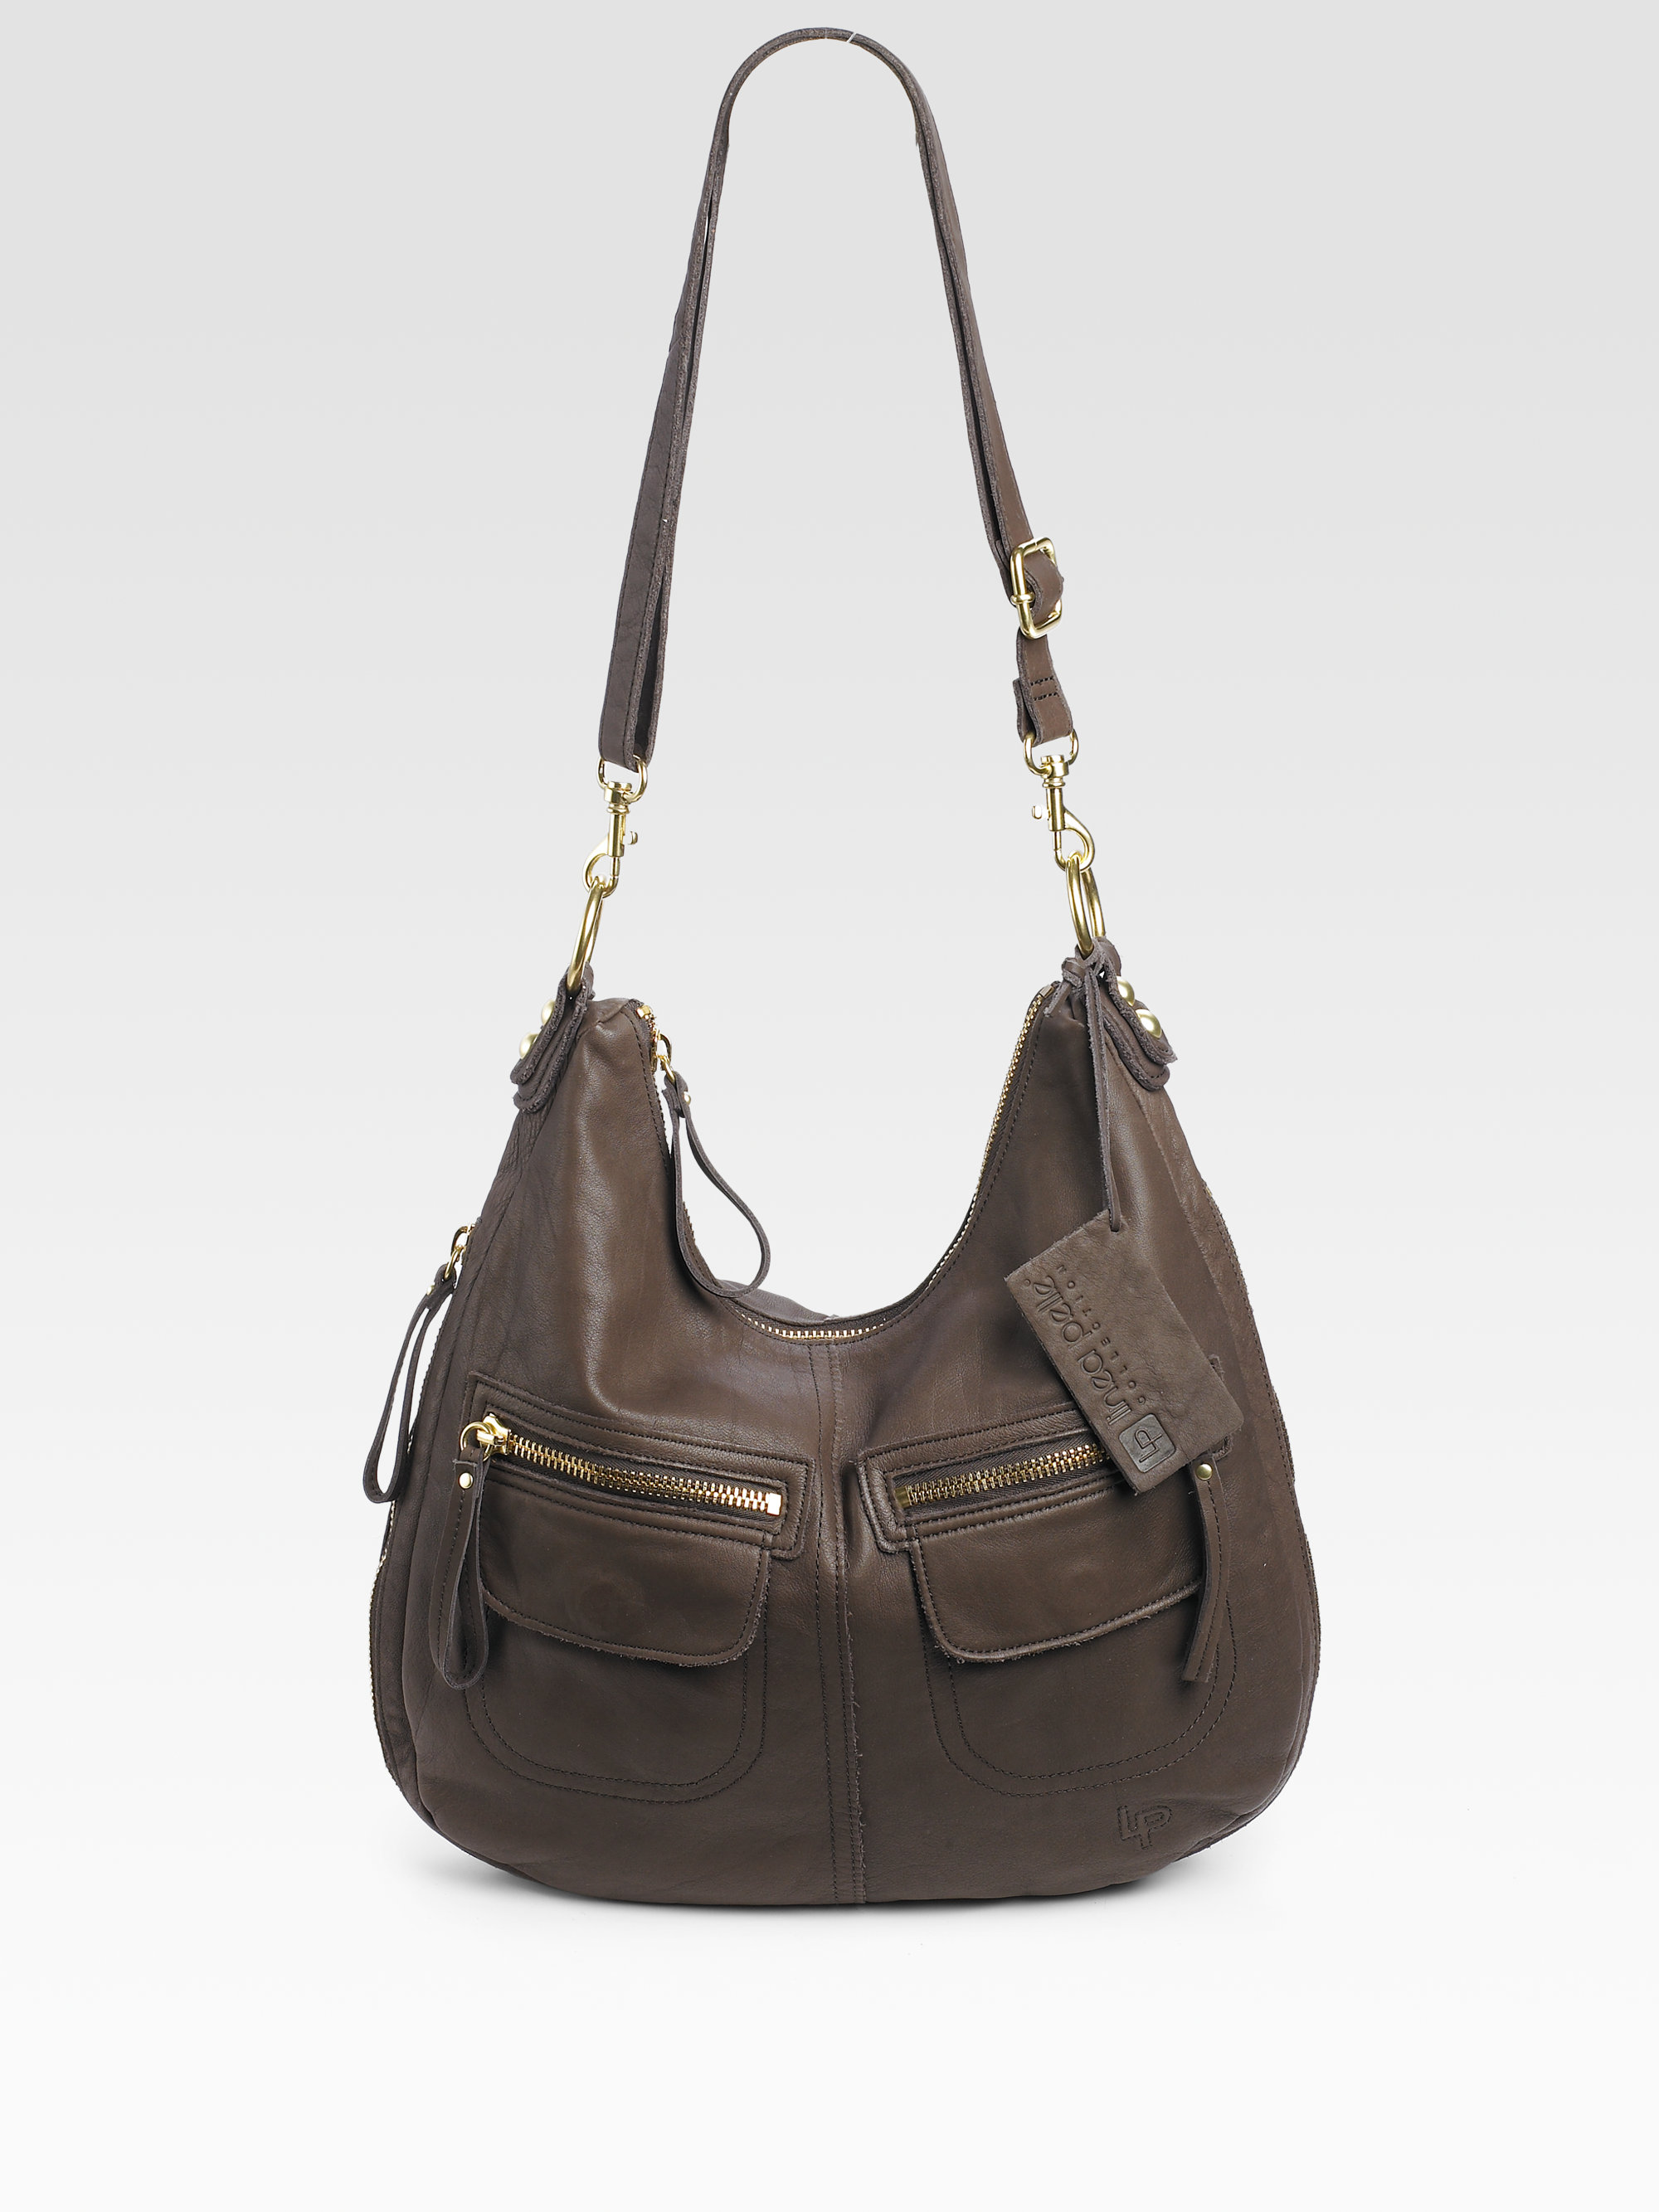 Linea Pelle Dylan Expandable Shoulder Bag 100